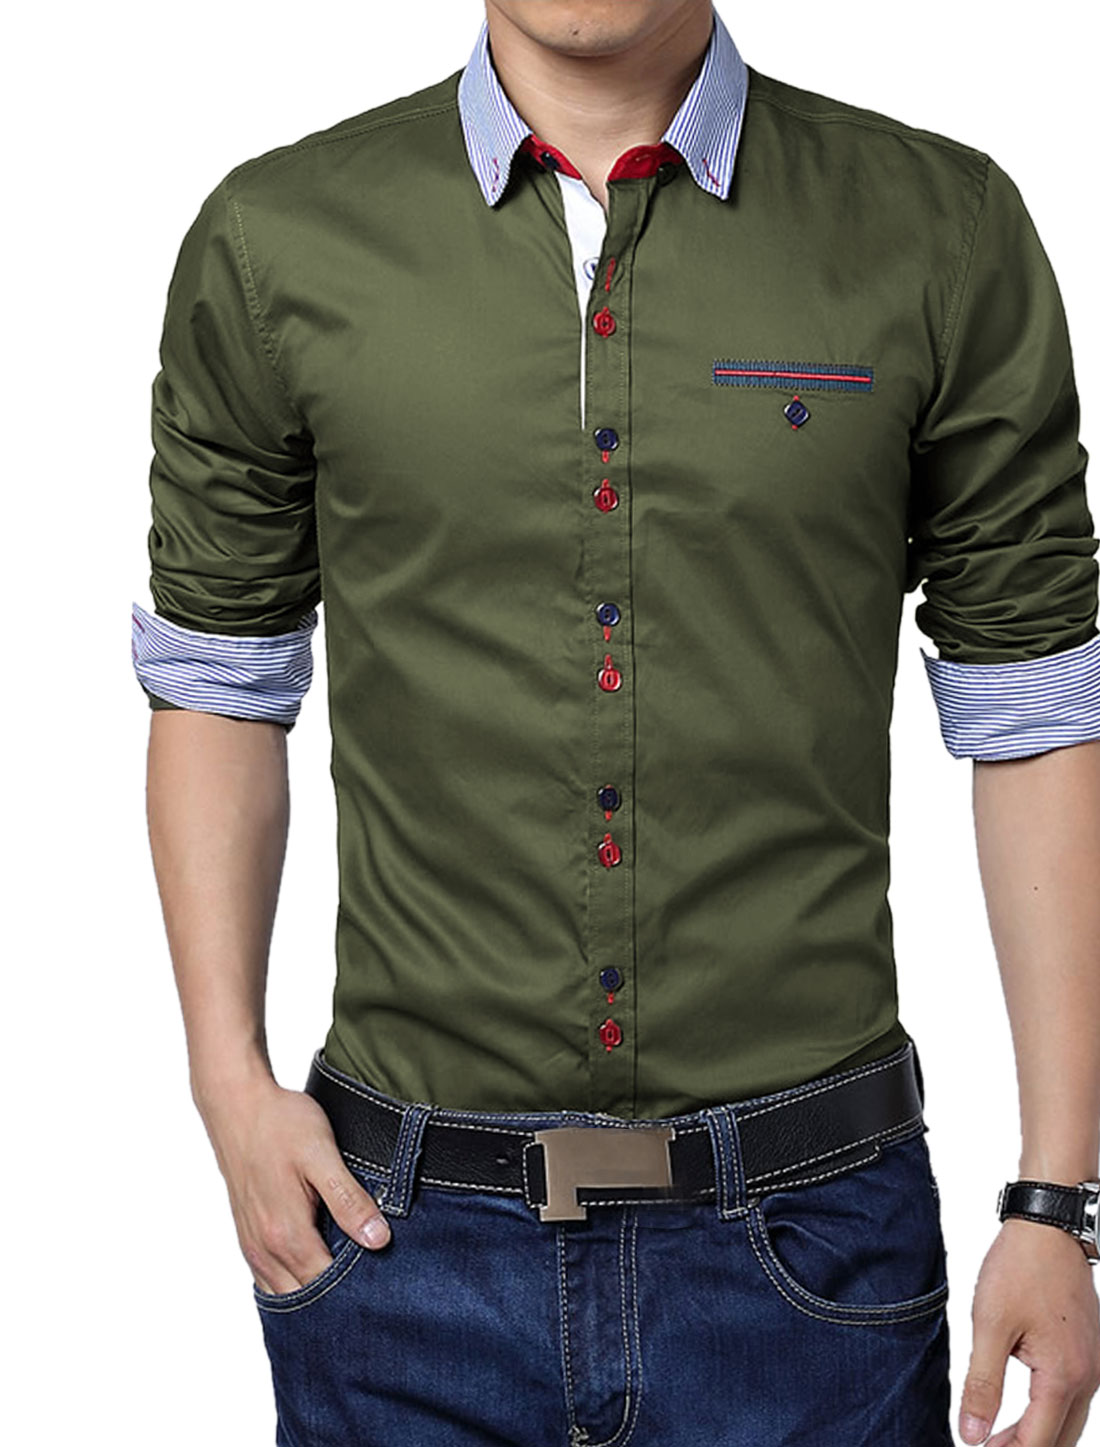 Men Stripes Pattern Embroidery Detail Slim Fit Button Down Top Shirt Army Green L